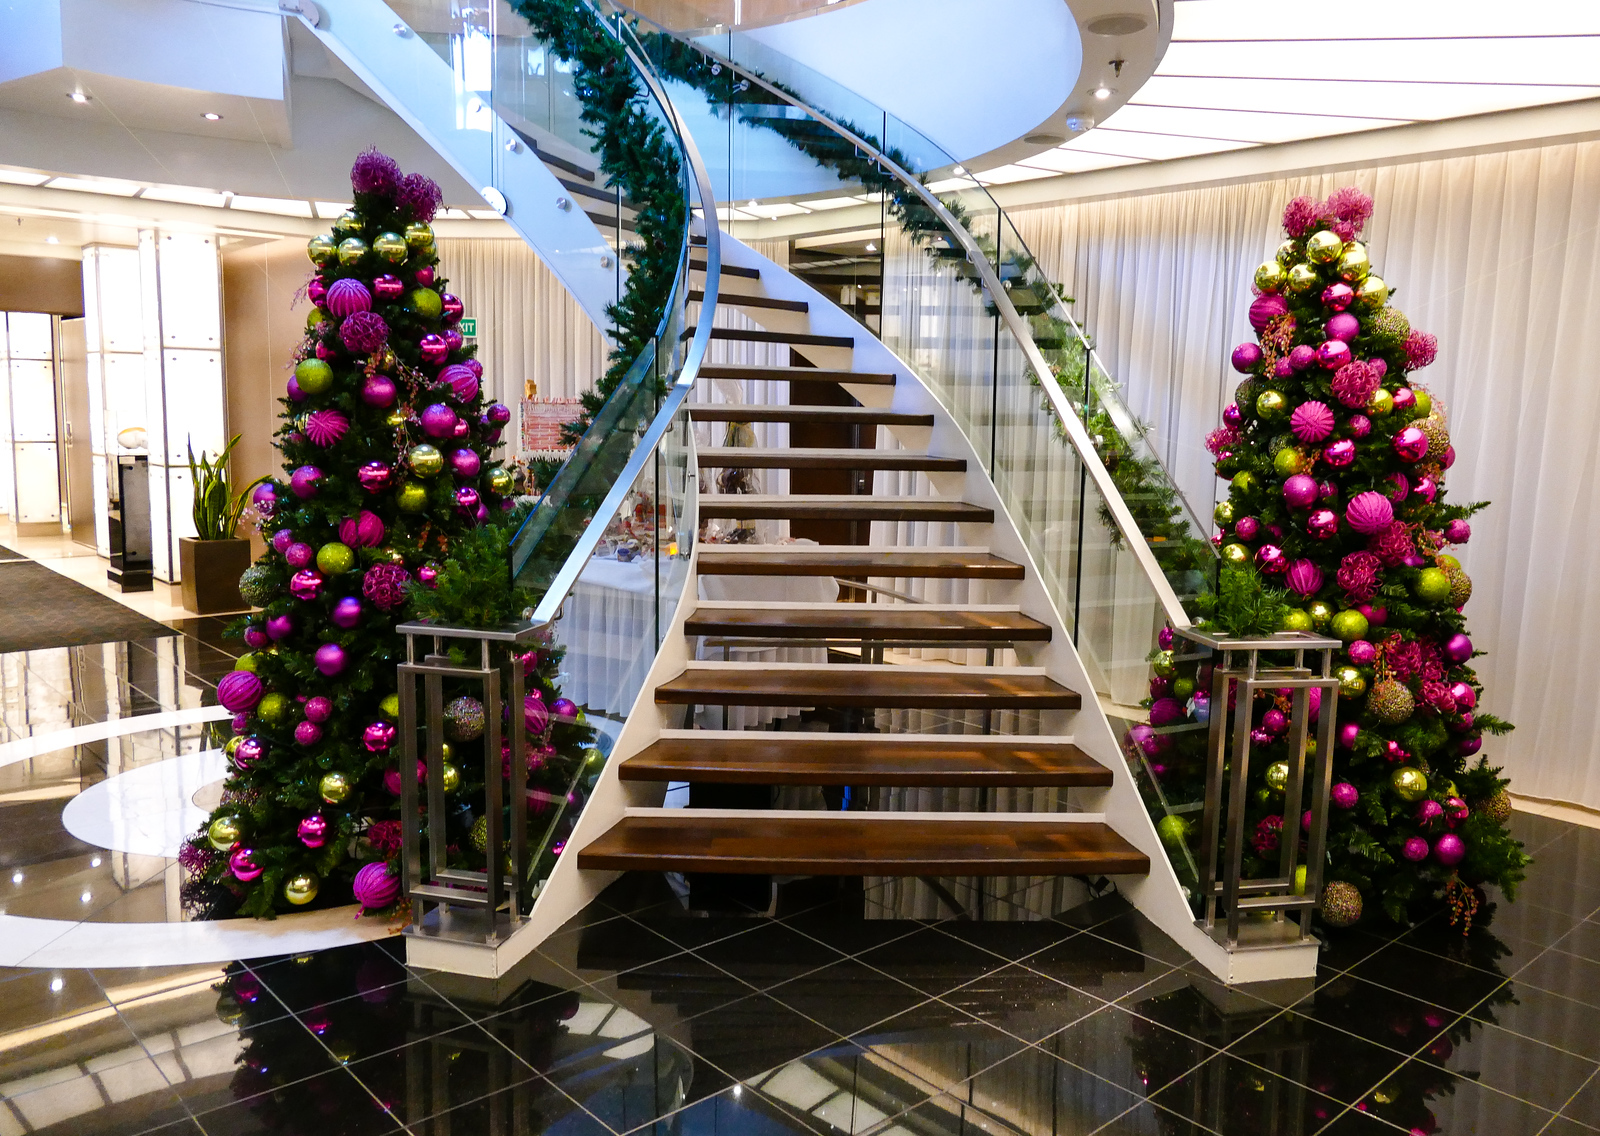 christmas trees decorate the seabourn quest atrium on a luxury cruise ship christmas - When Do Cruise Ships Decorated For Christmas